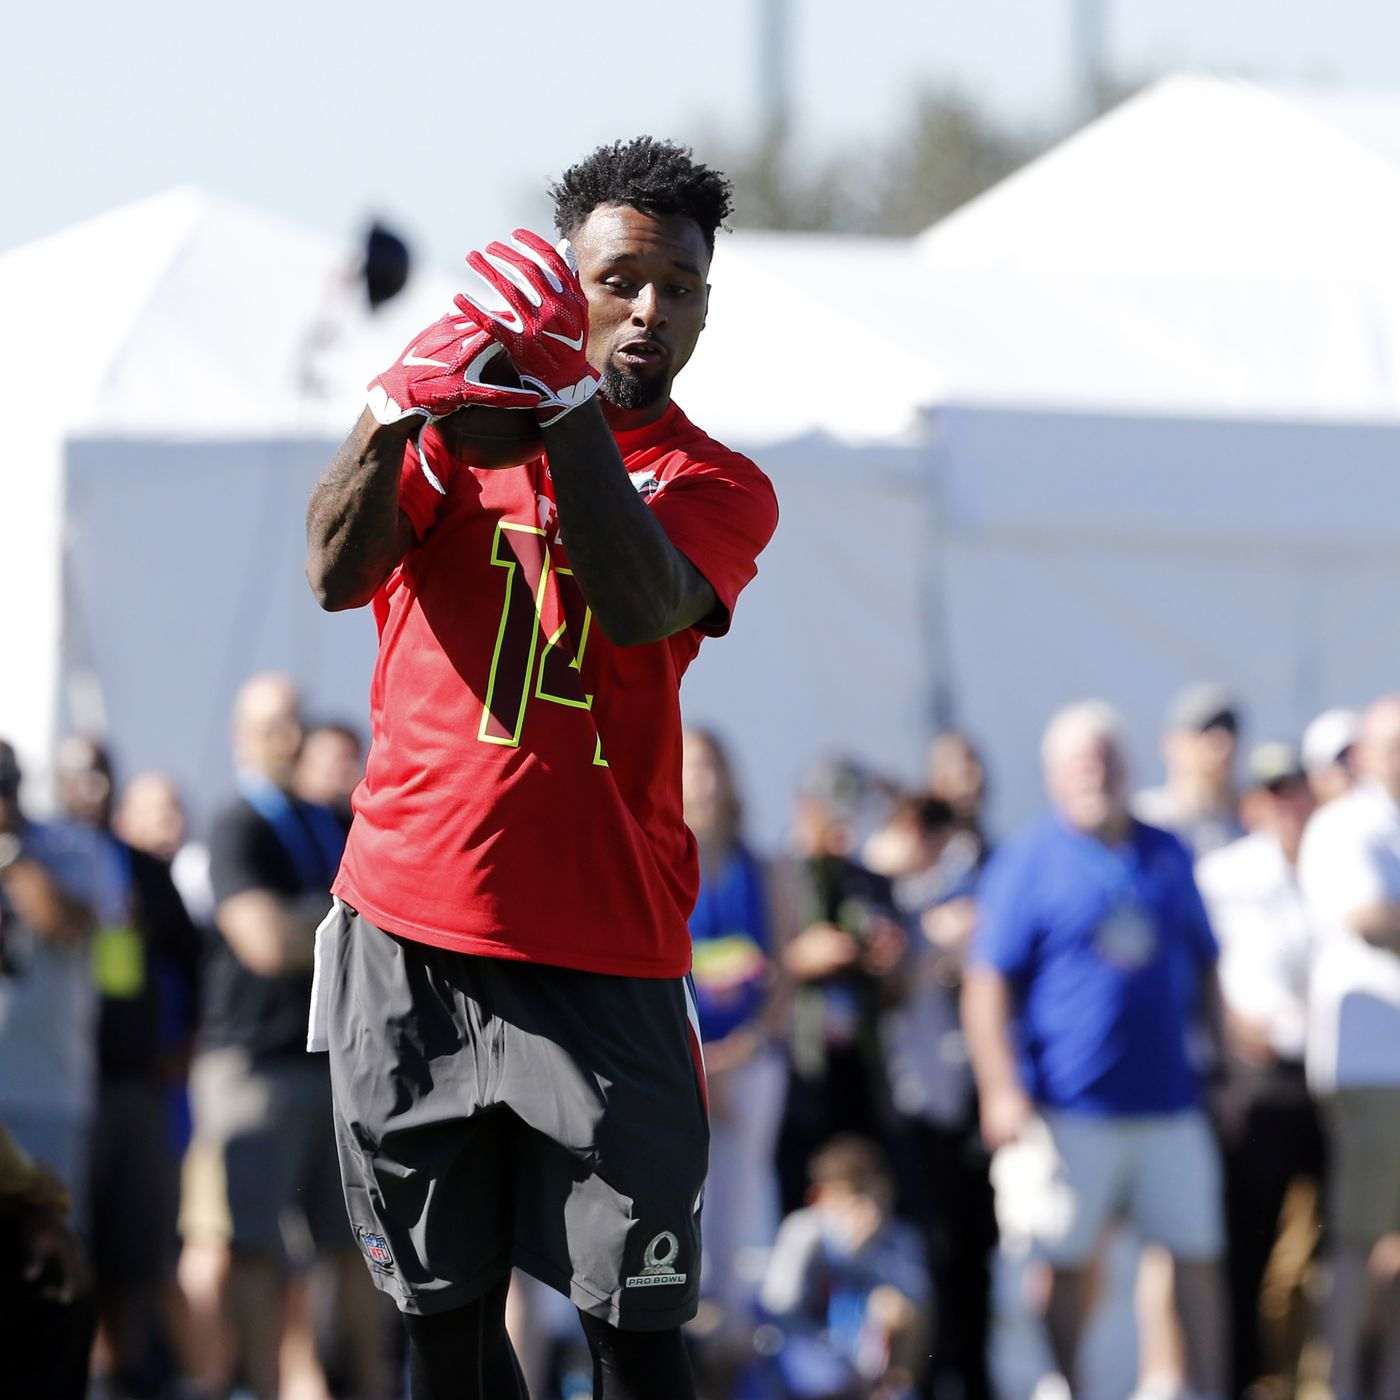 size 40 6898c f70bd Jarvis Landry owns 'Best Hands' at Pro Bowl - The Phinsider